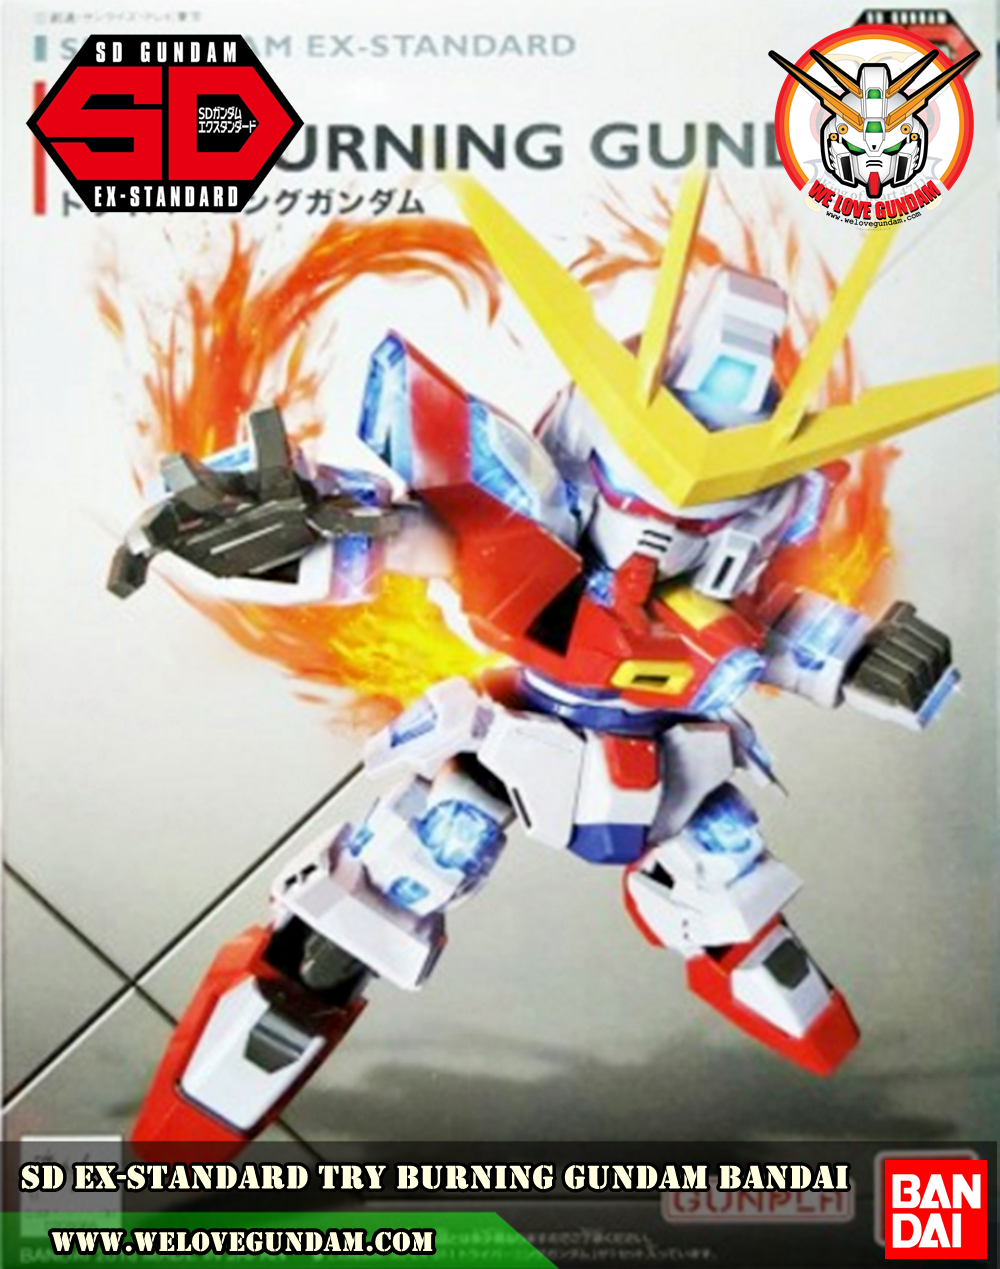 SD EX-STANDARD 011 TRY BURNING GUNDAM